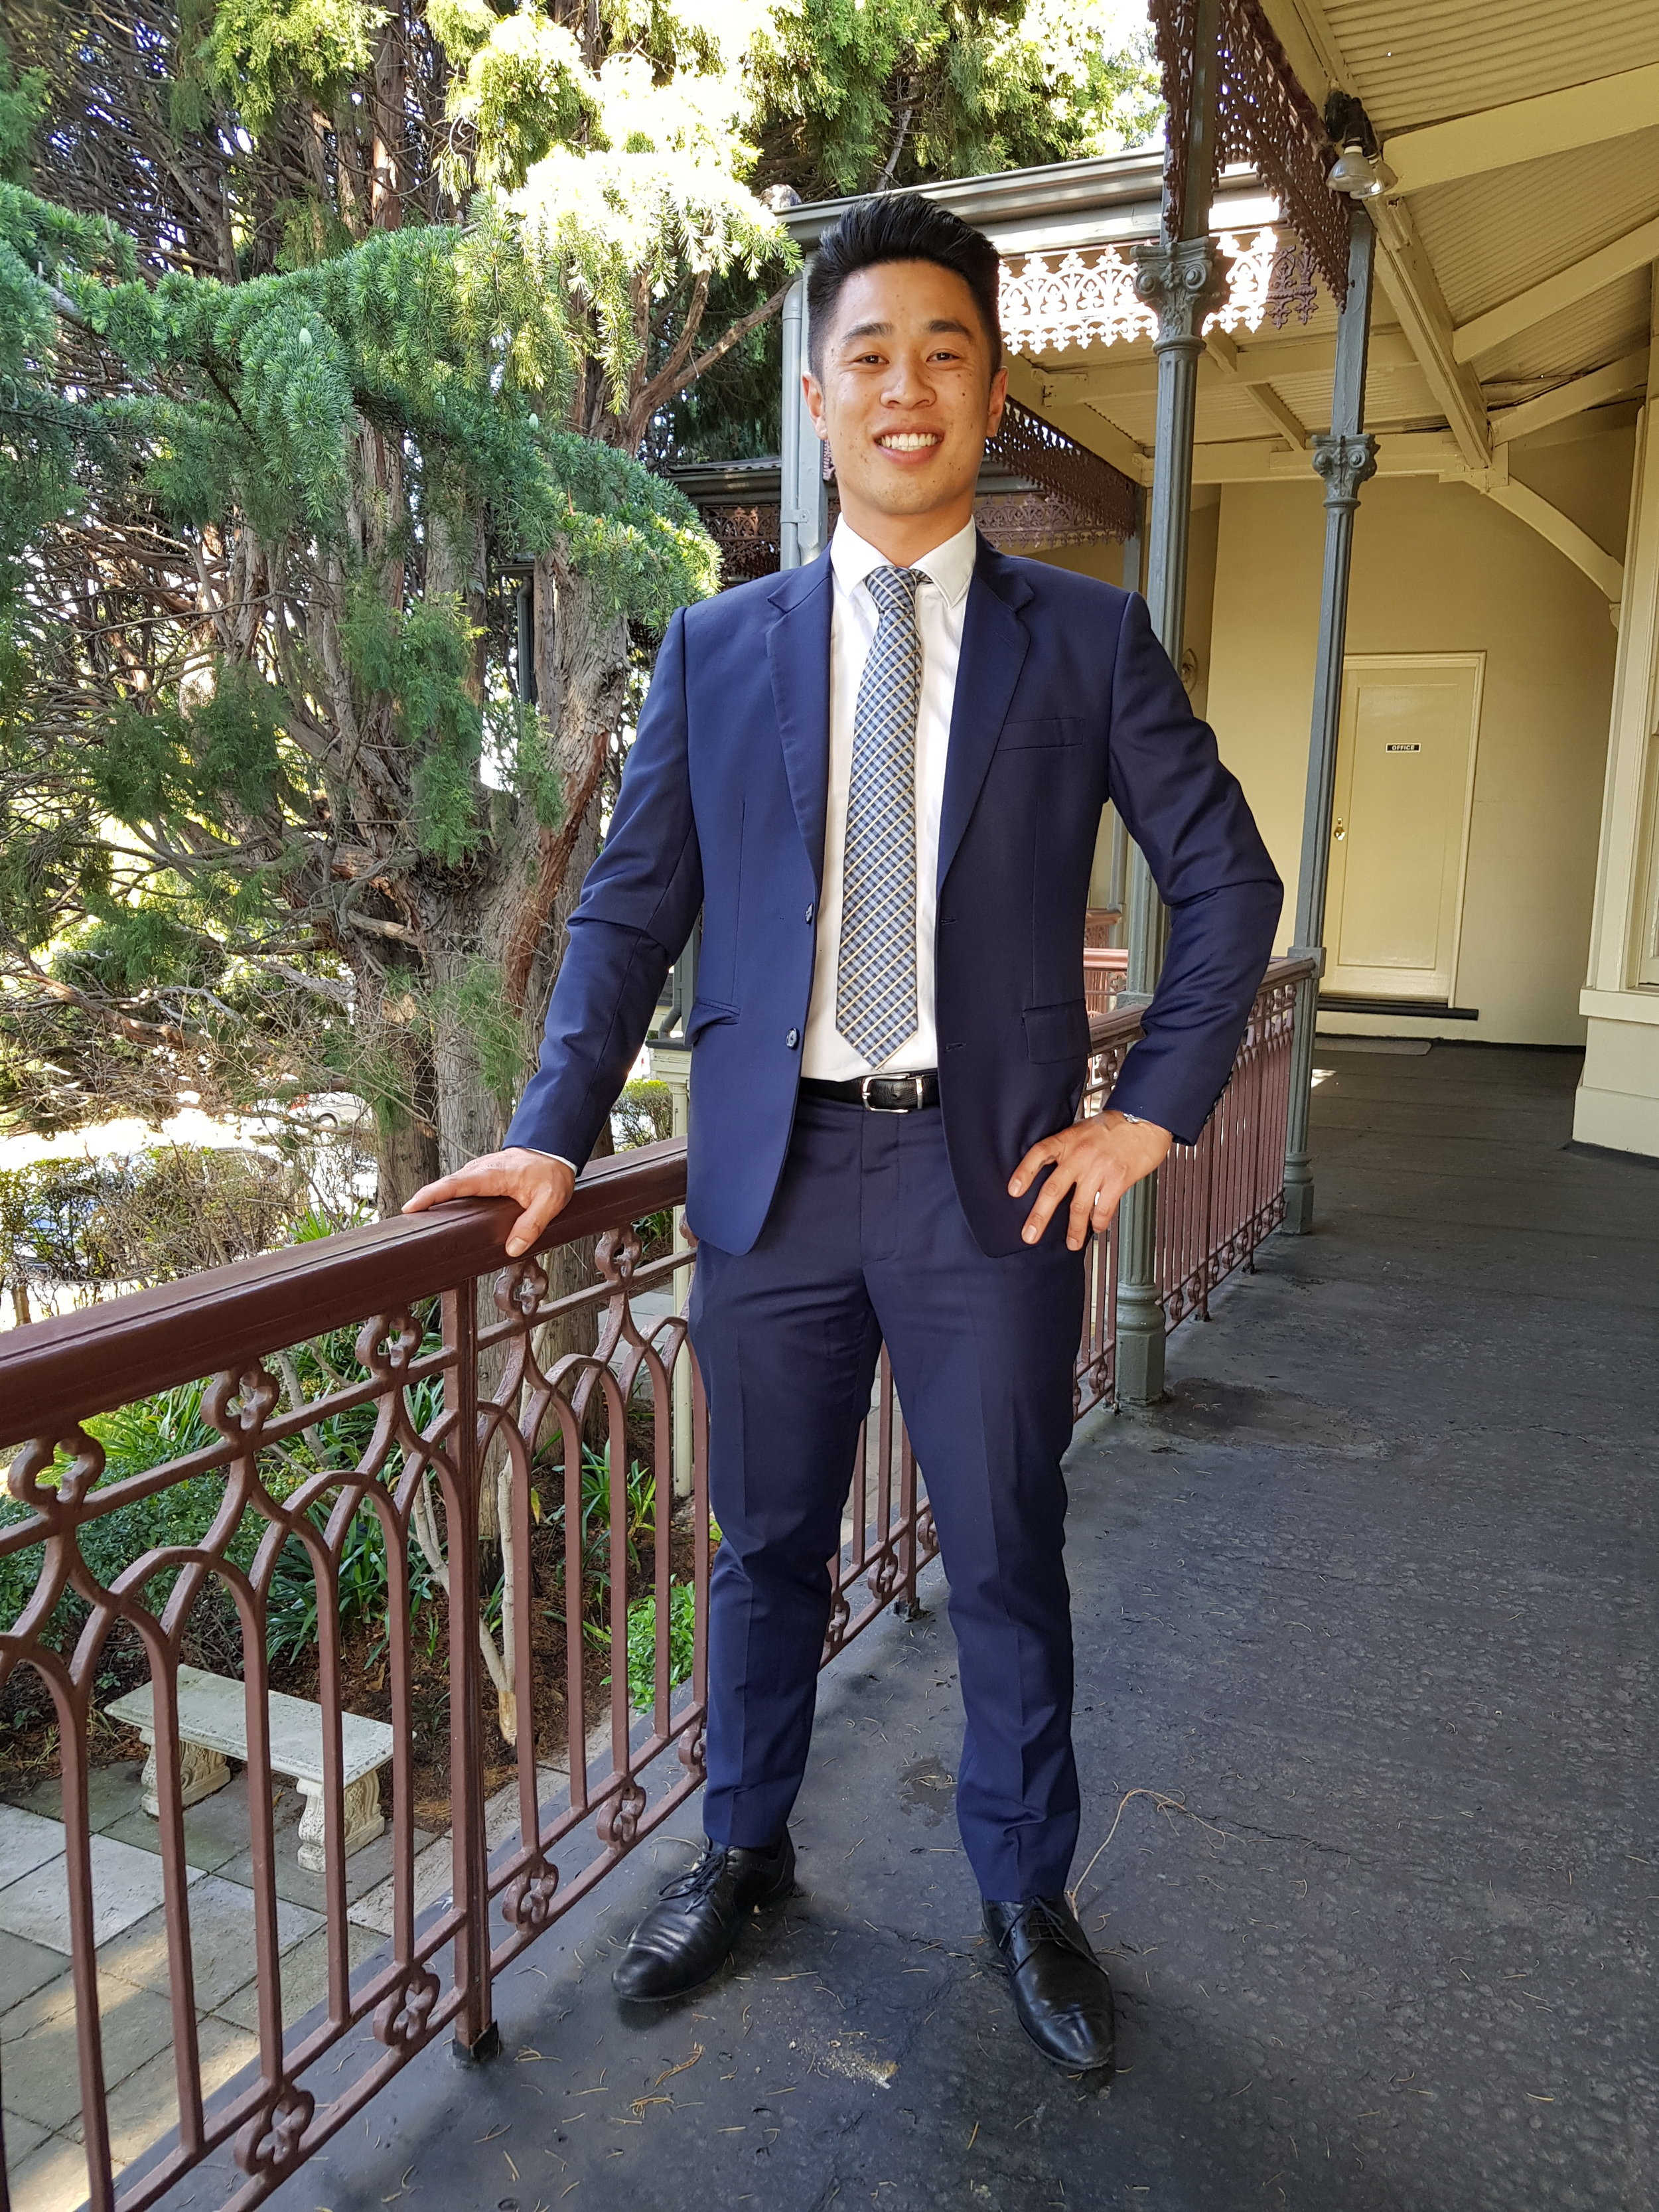 jason tang - cLIENT SERVICE MANAGER